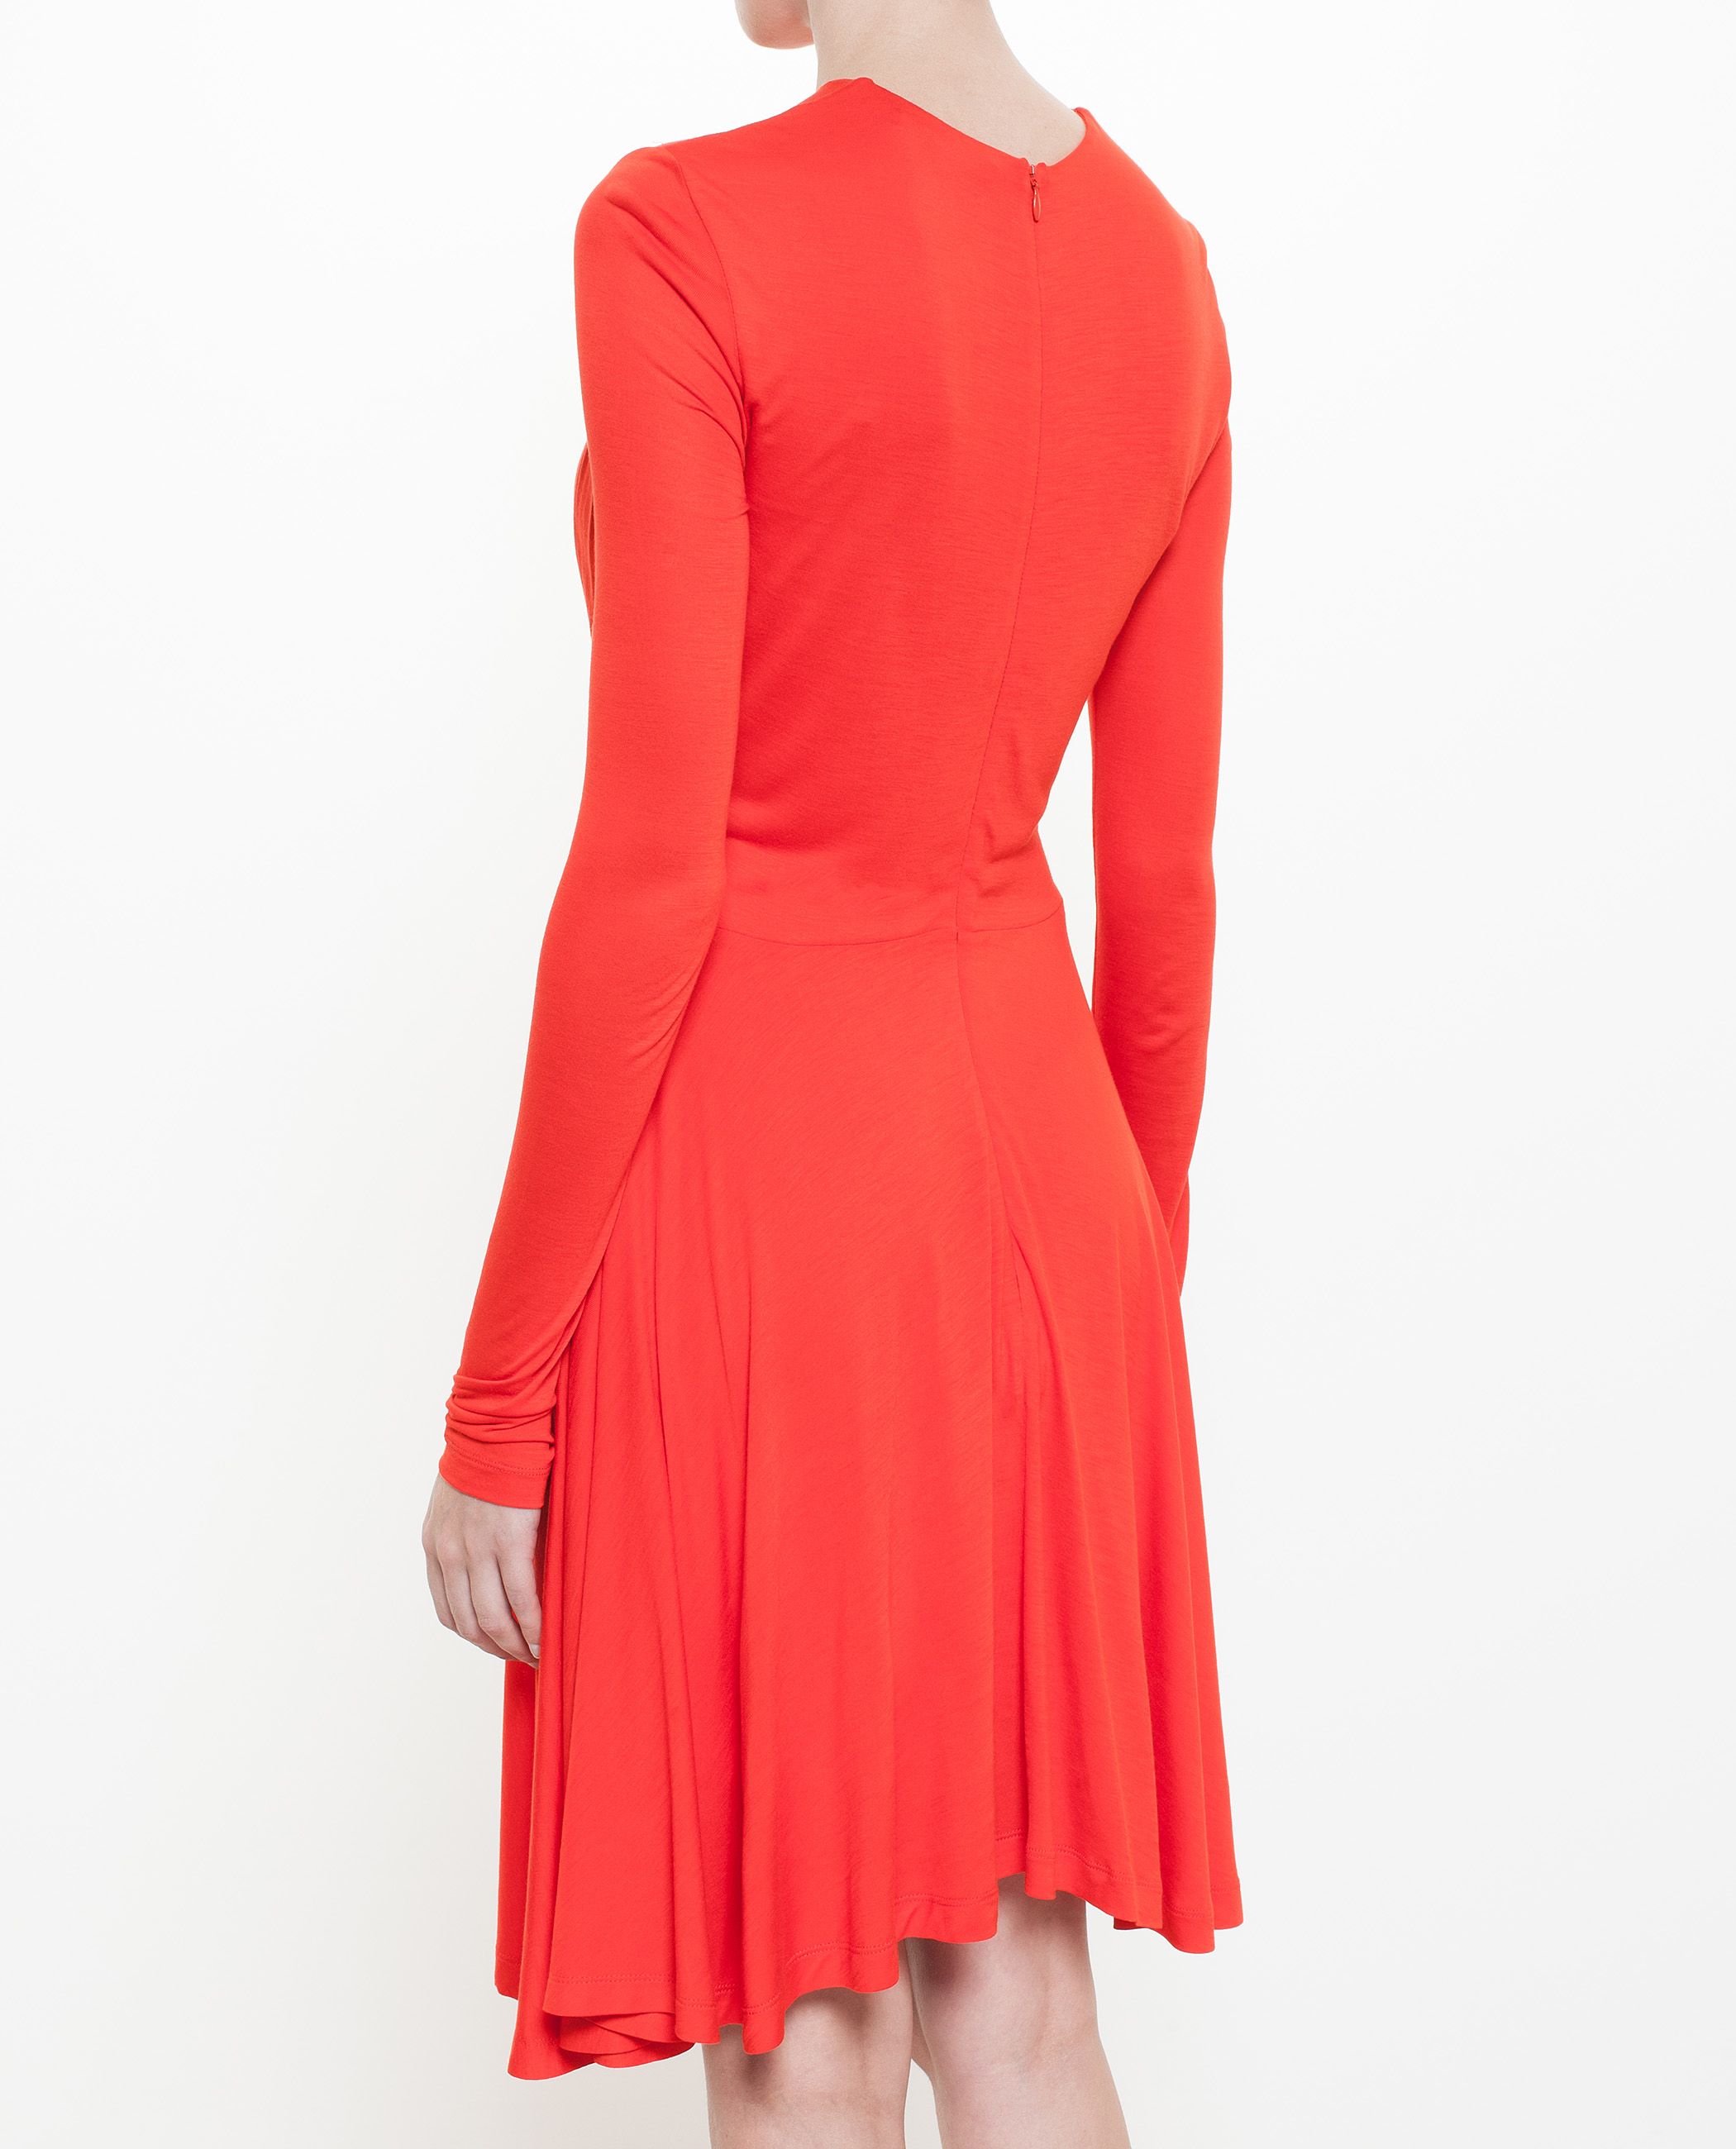 Carven Draped Front Mini Dress in Red